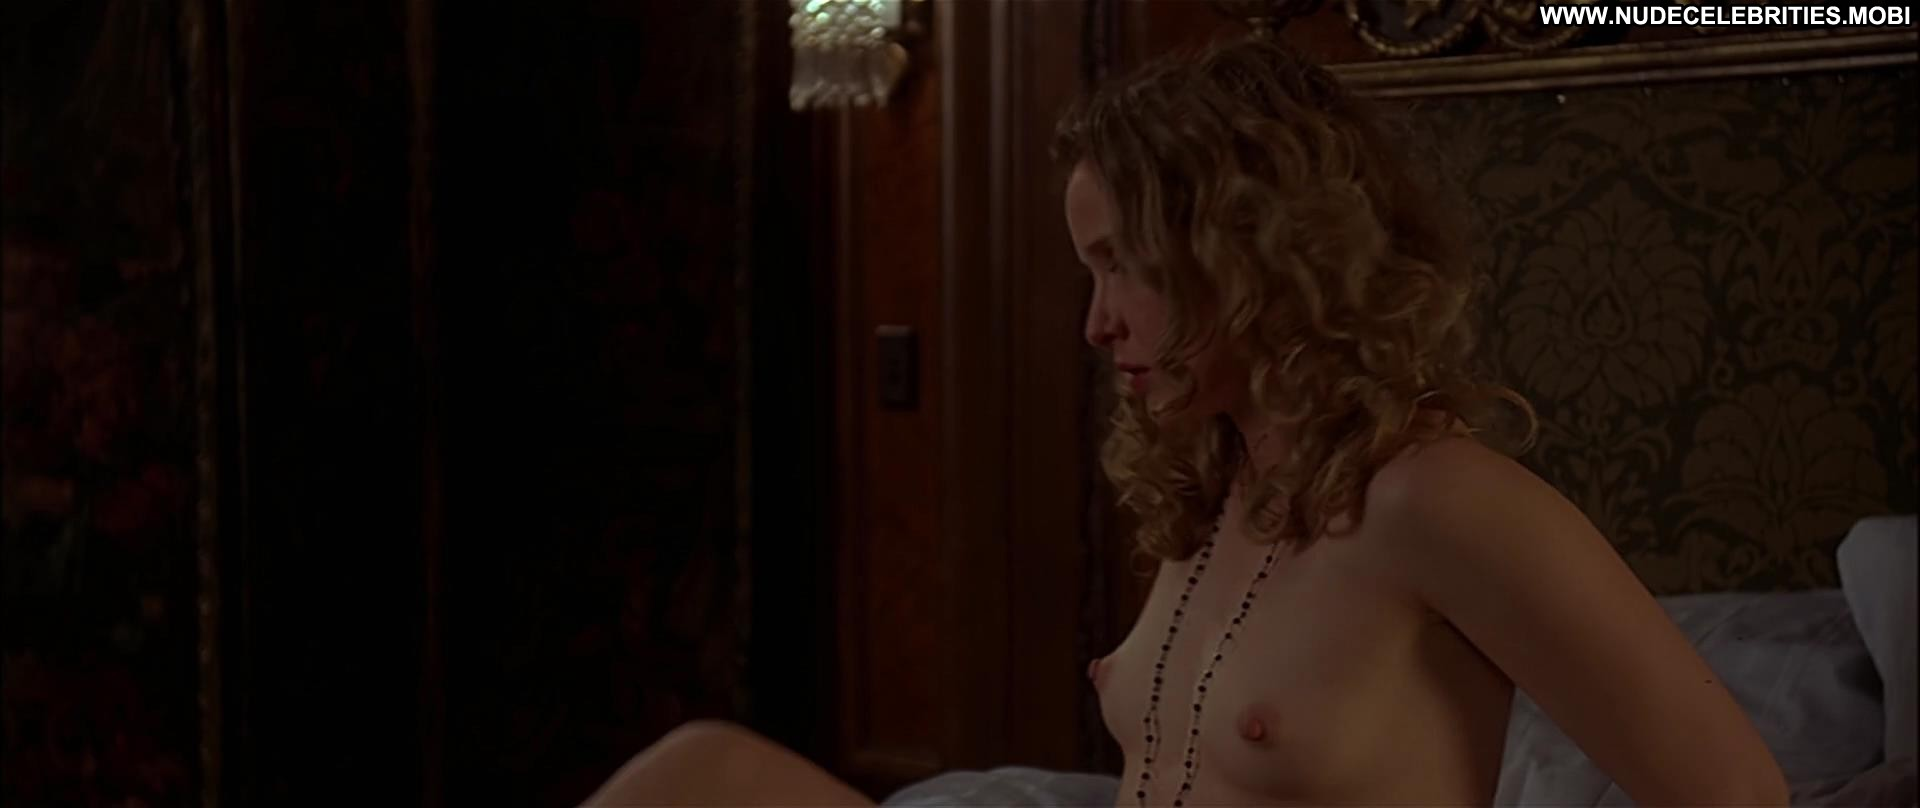 july delpy investigating sex jpg 1080x810